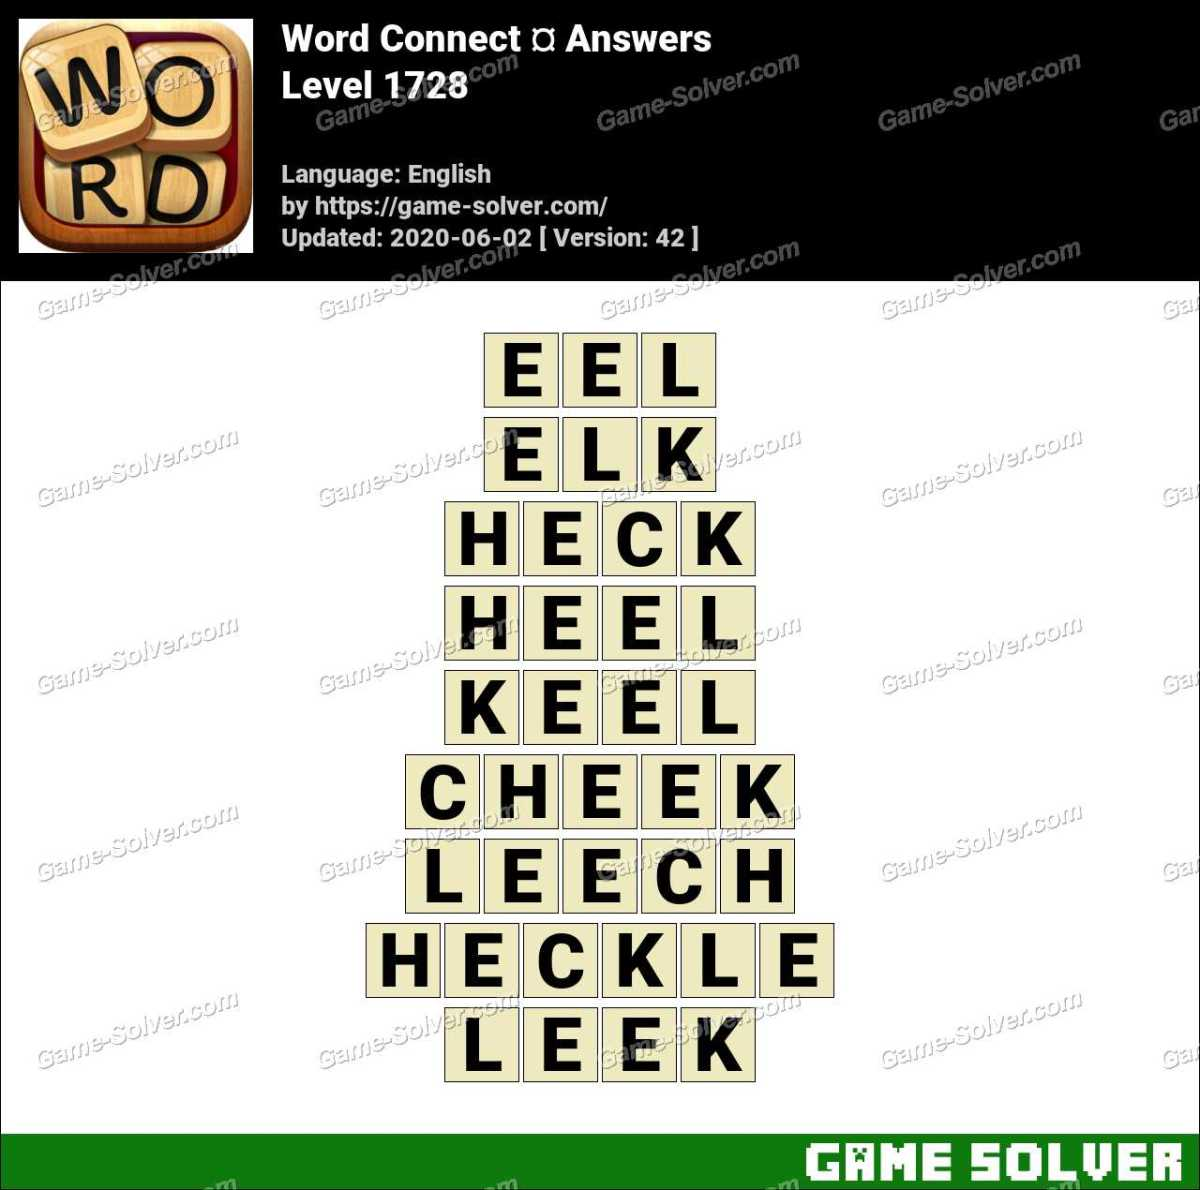 Word Connect Level 1728 Answers